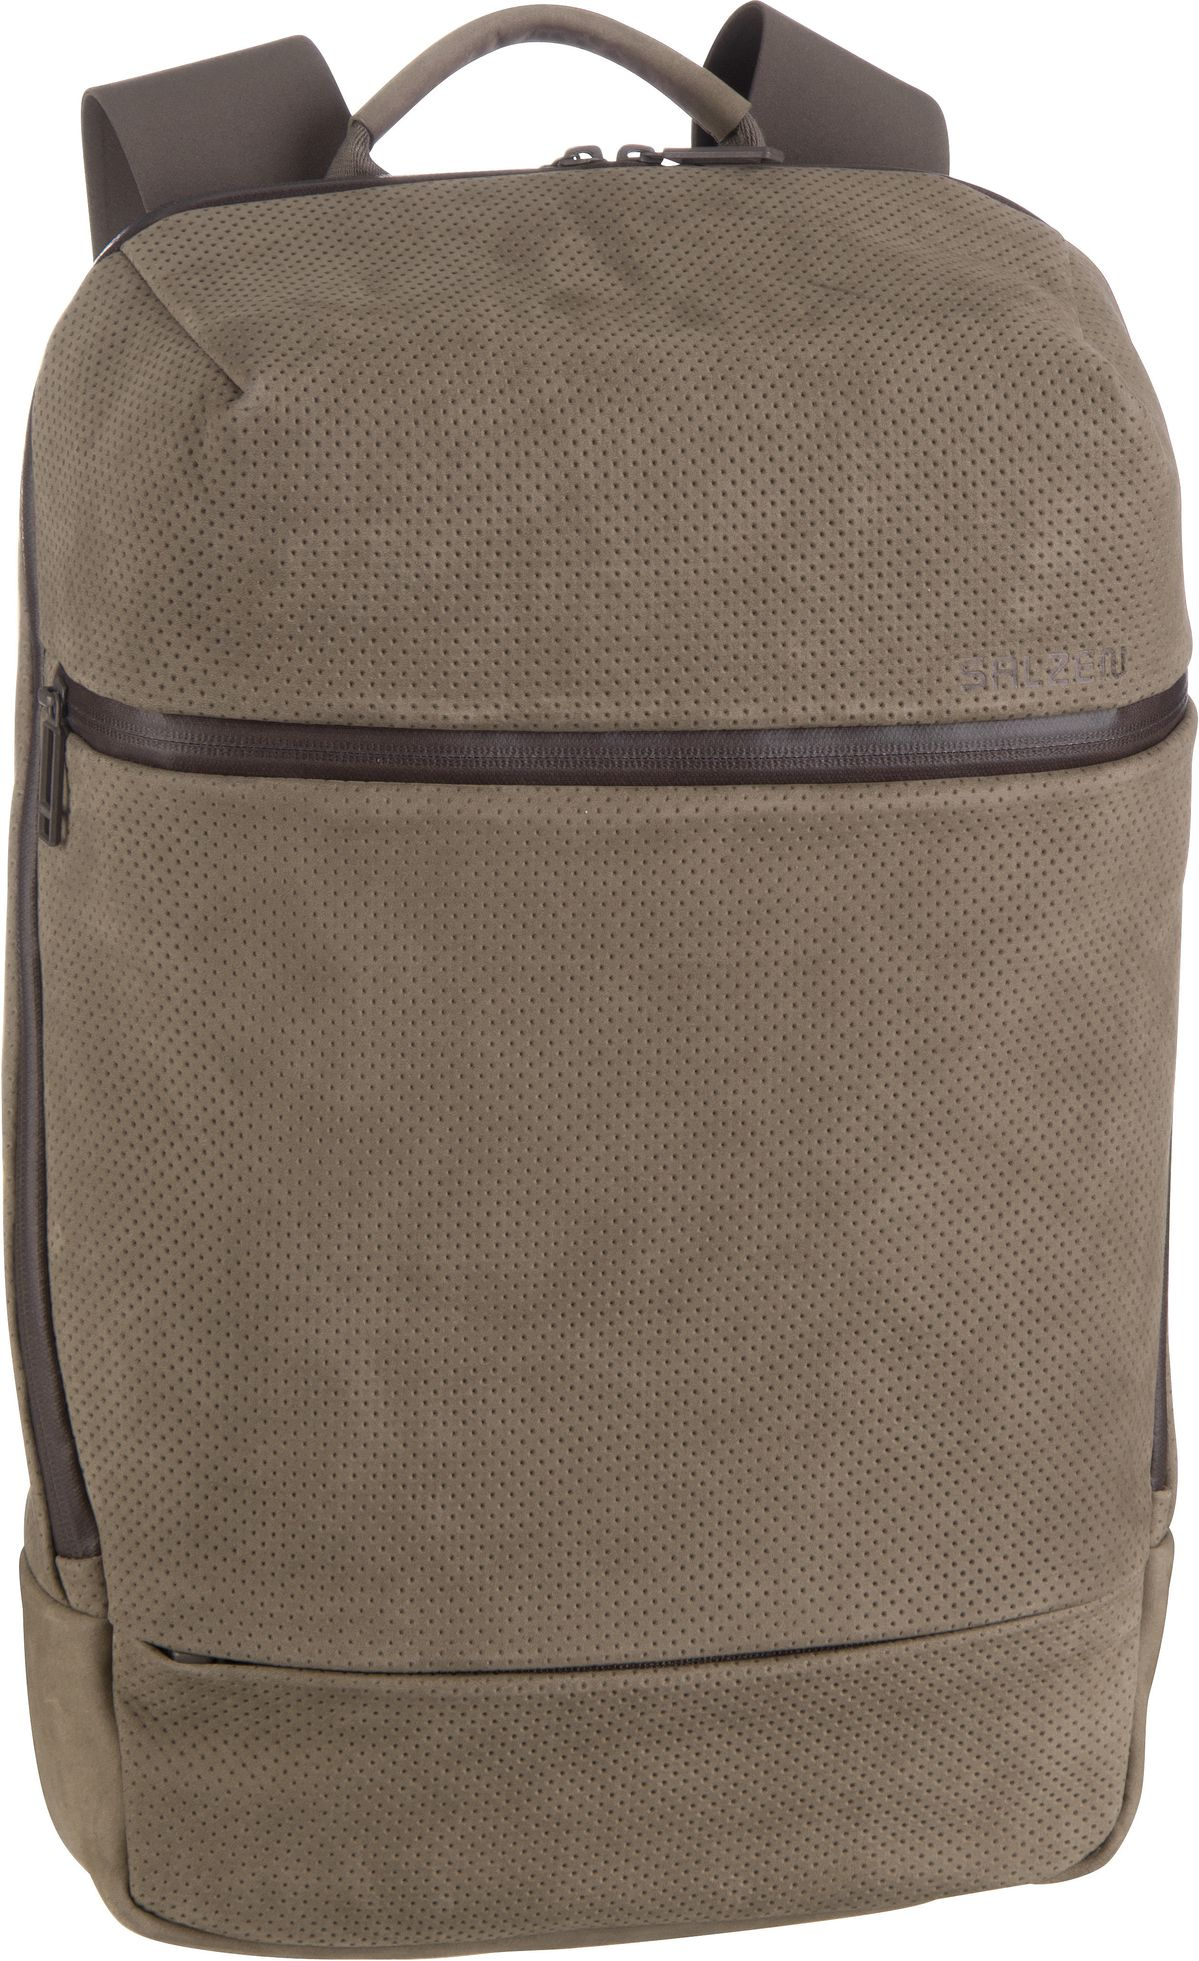 Laptoprucksack Savvy Leather Weims Taupe (15 Liter)